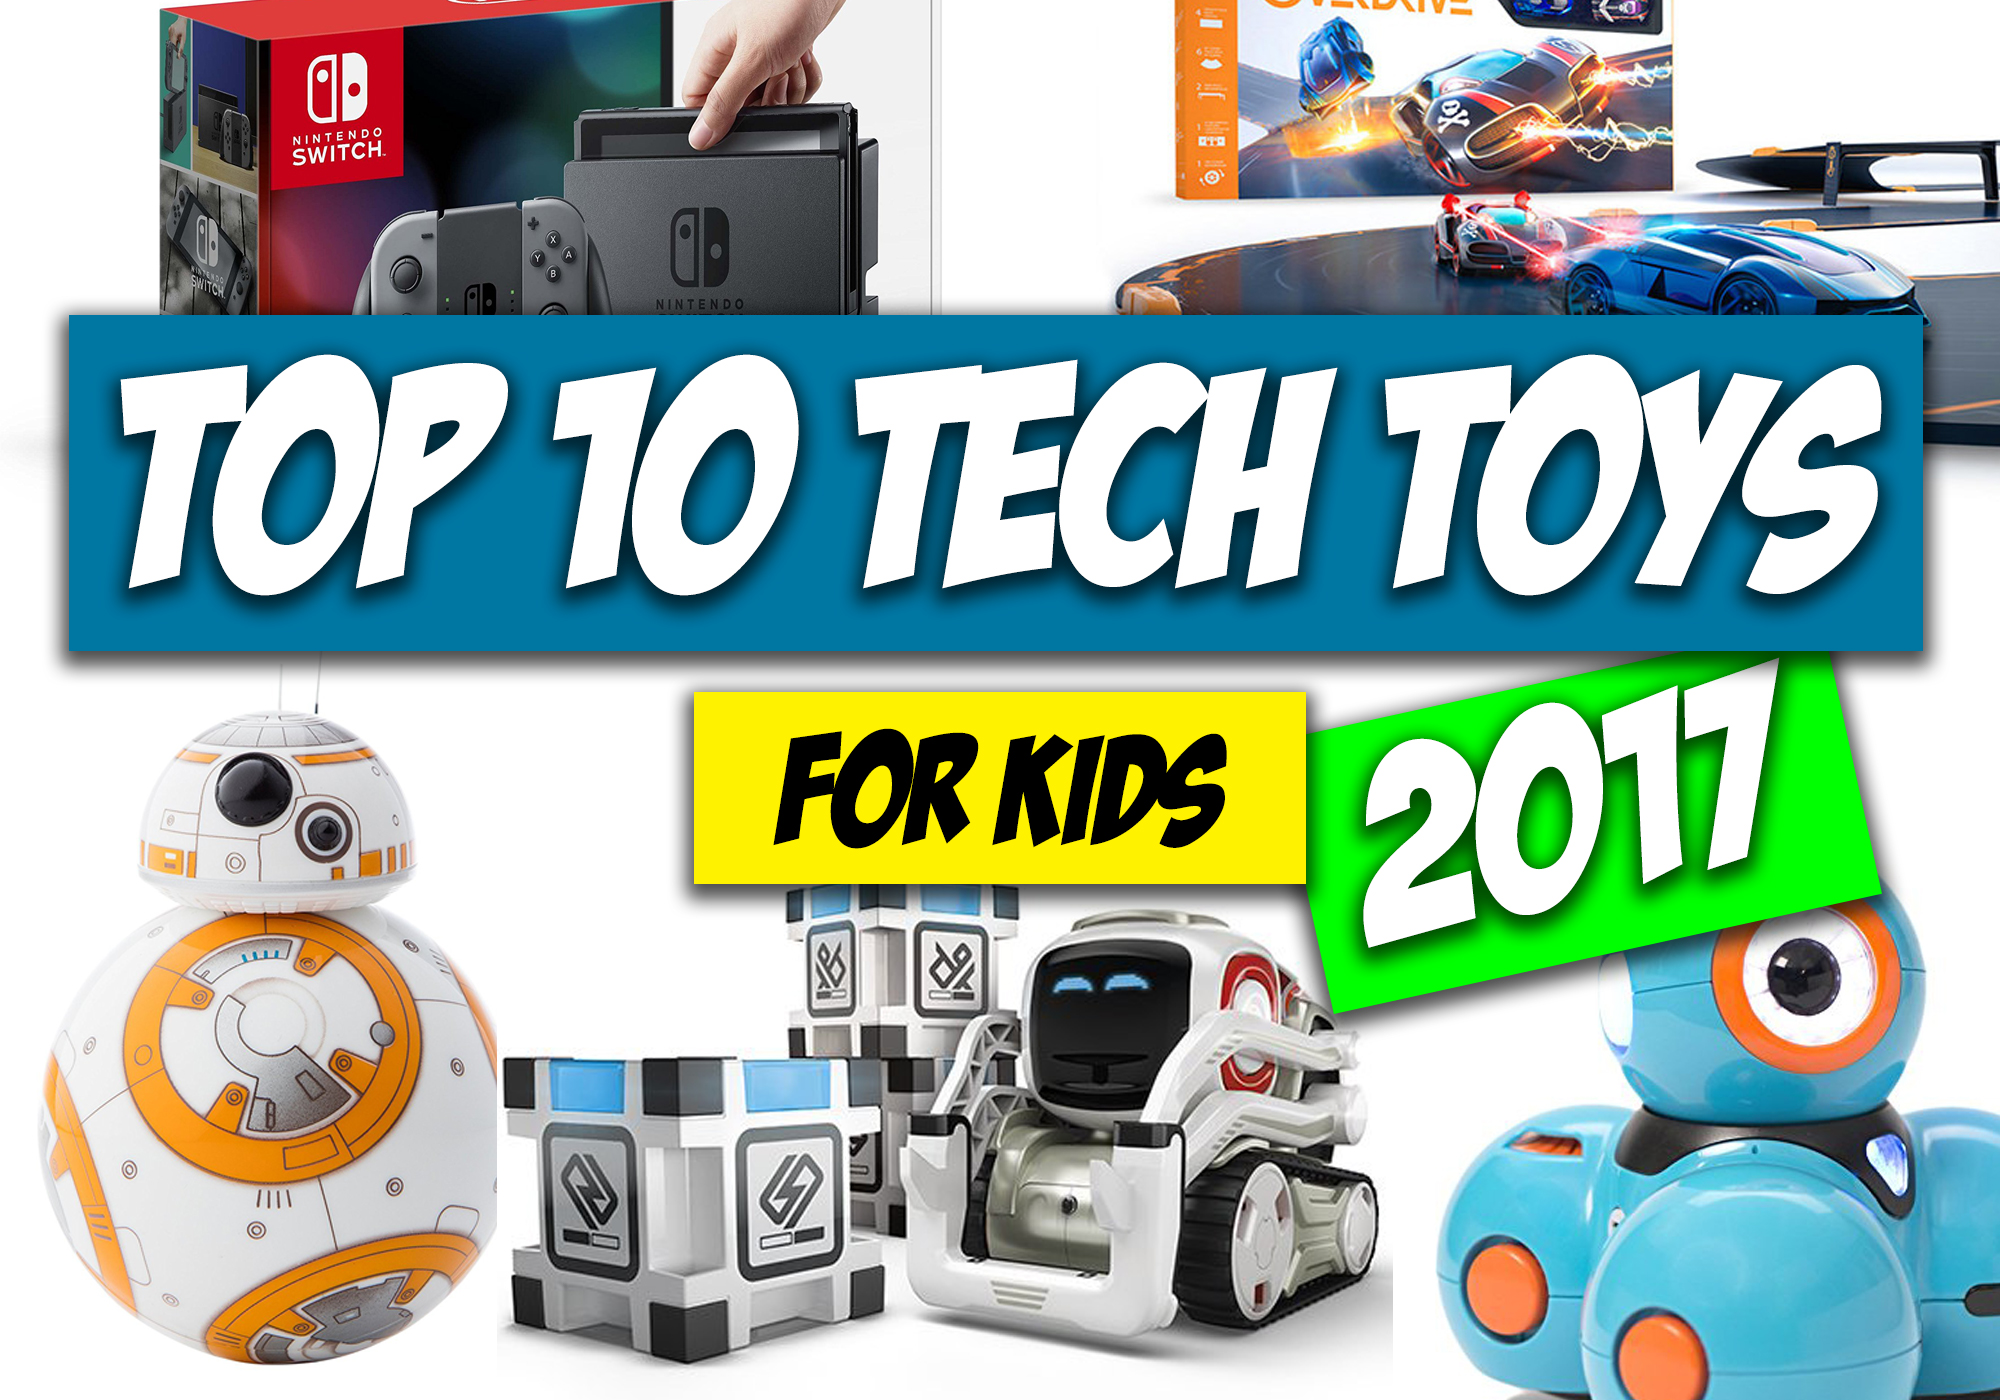 Toys For Kids 10 : Top tech toys for kids learn how